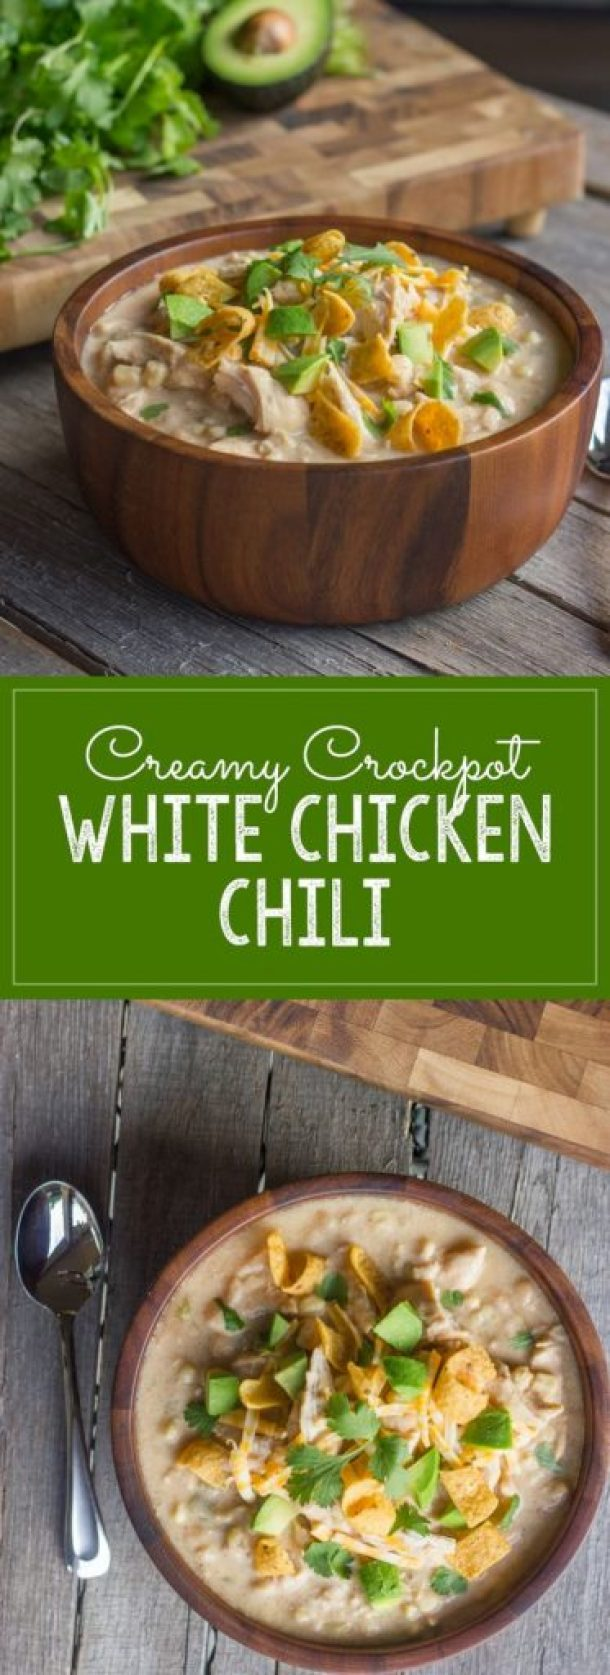 Creamy Crockpot White Chicken Chili Recipe | Lovely Little Kitchen